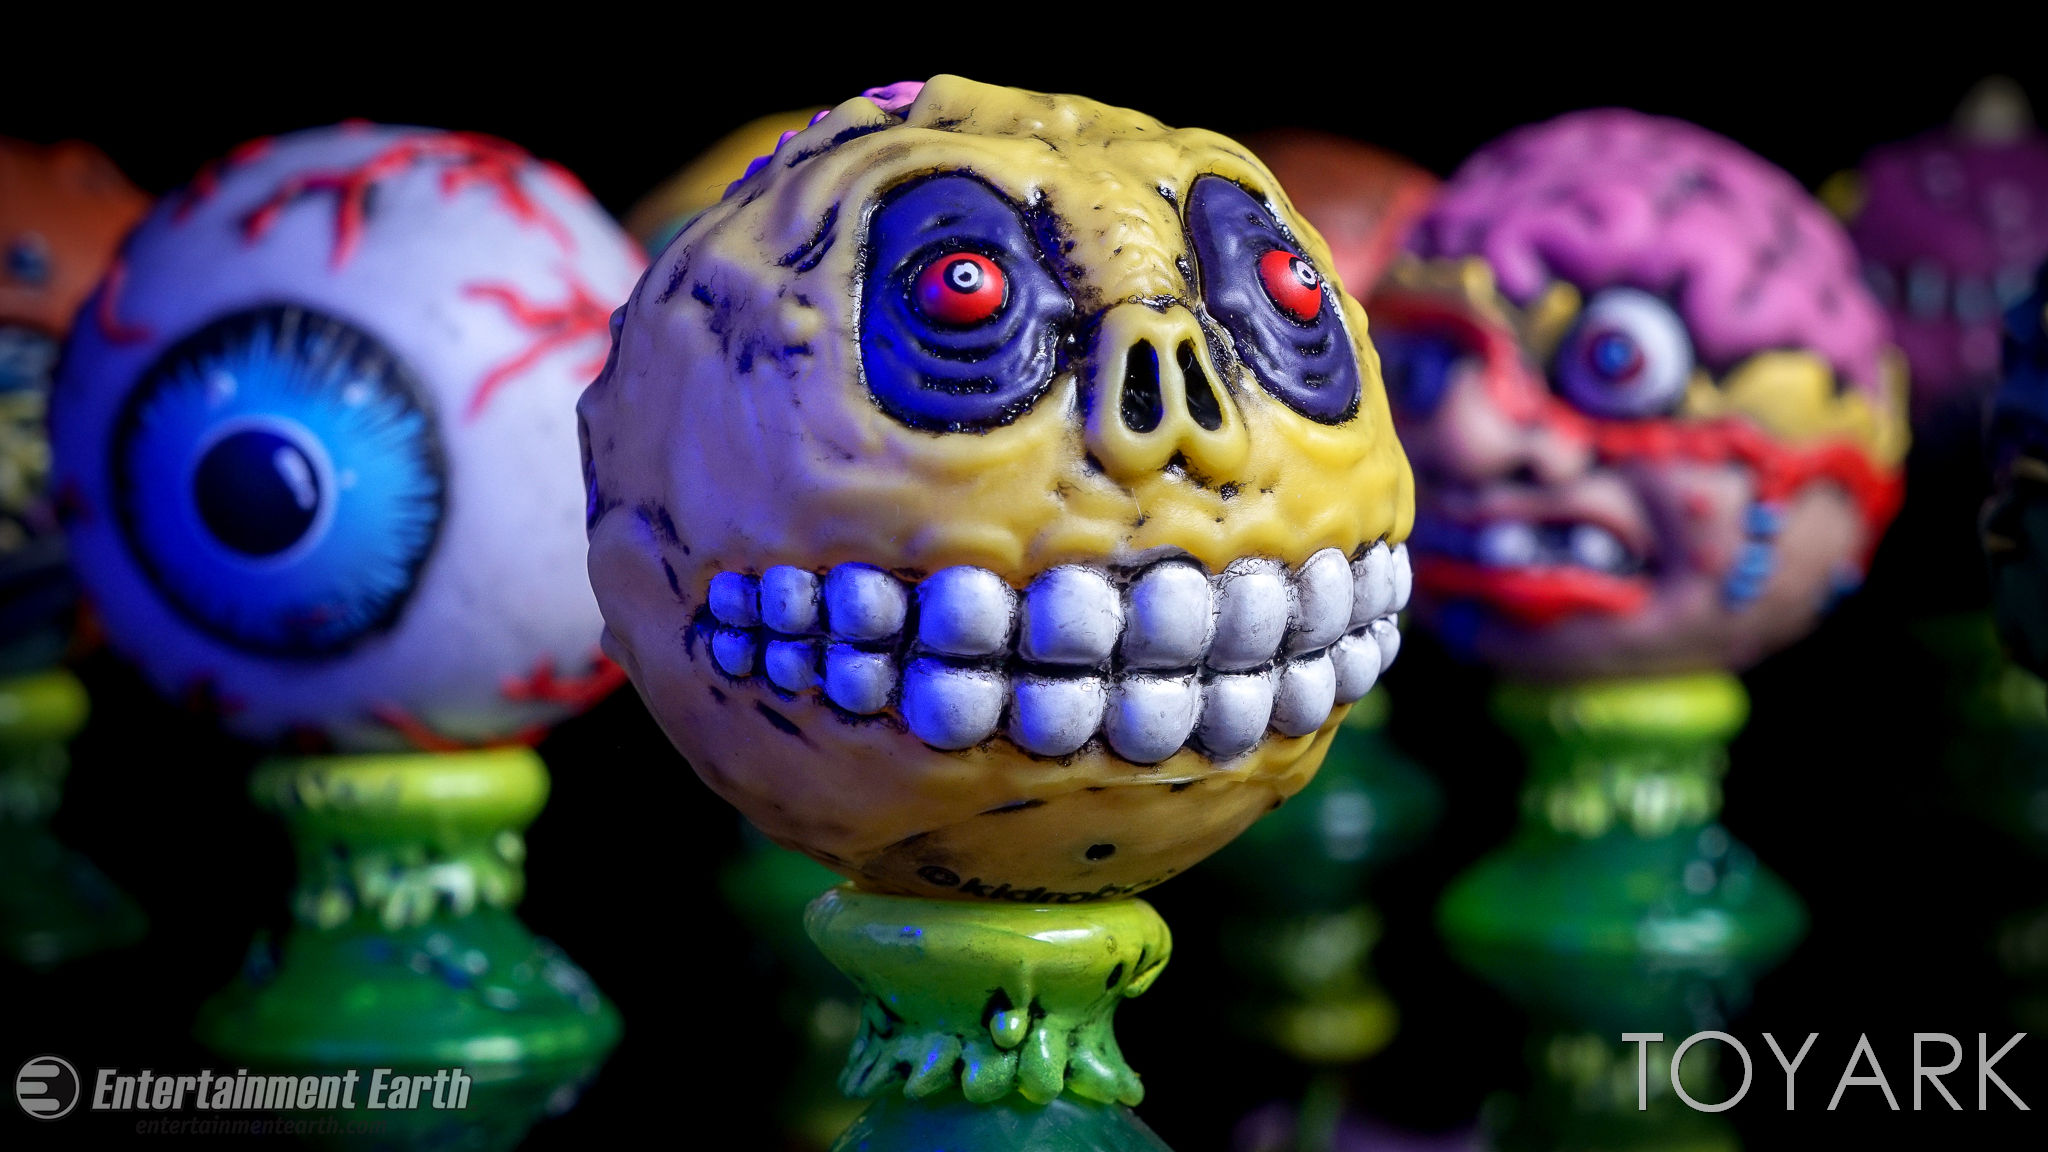 http://news.toyark.com/wp-content/uploads/sites/4/2017/02/Kidrobot-Madballs-Blind-Box-061.jpg